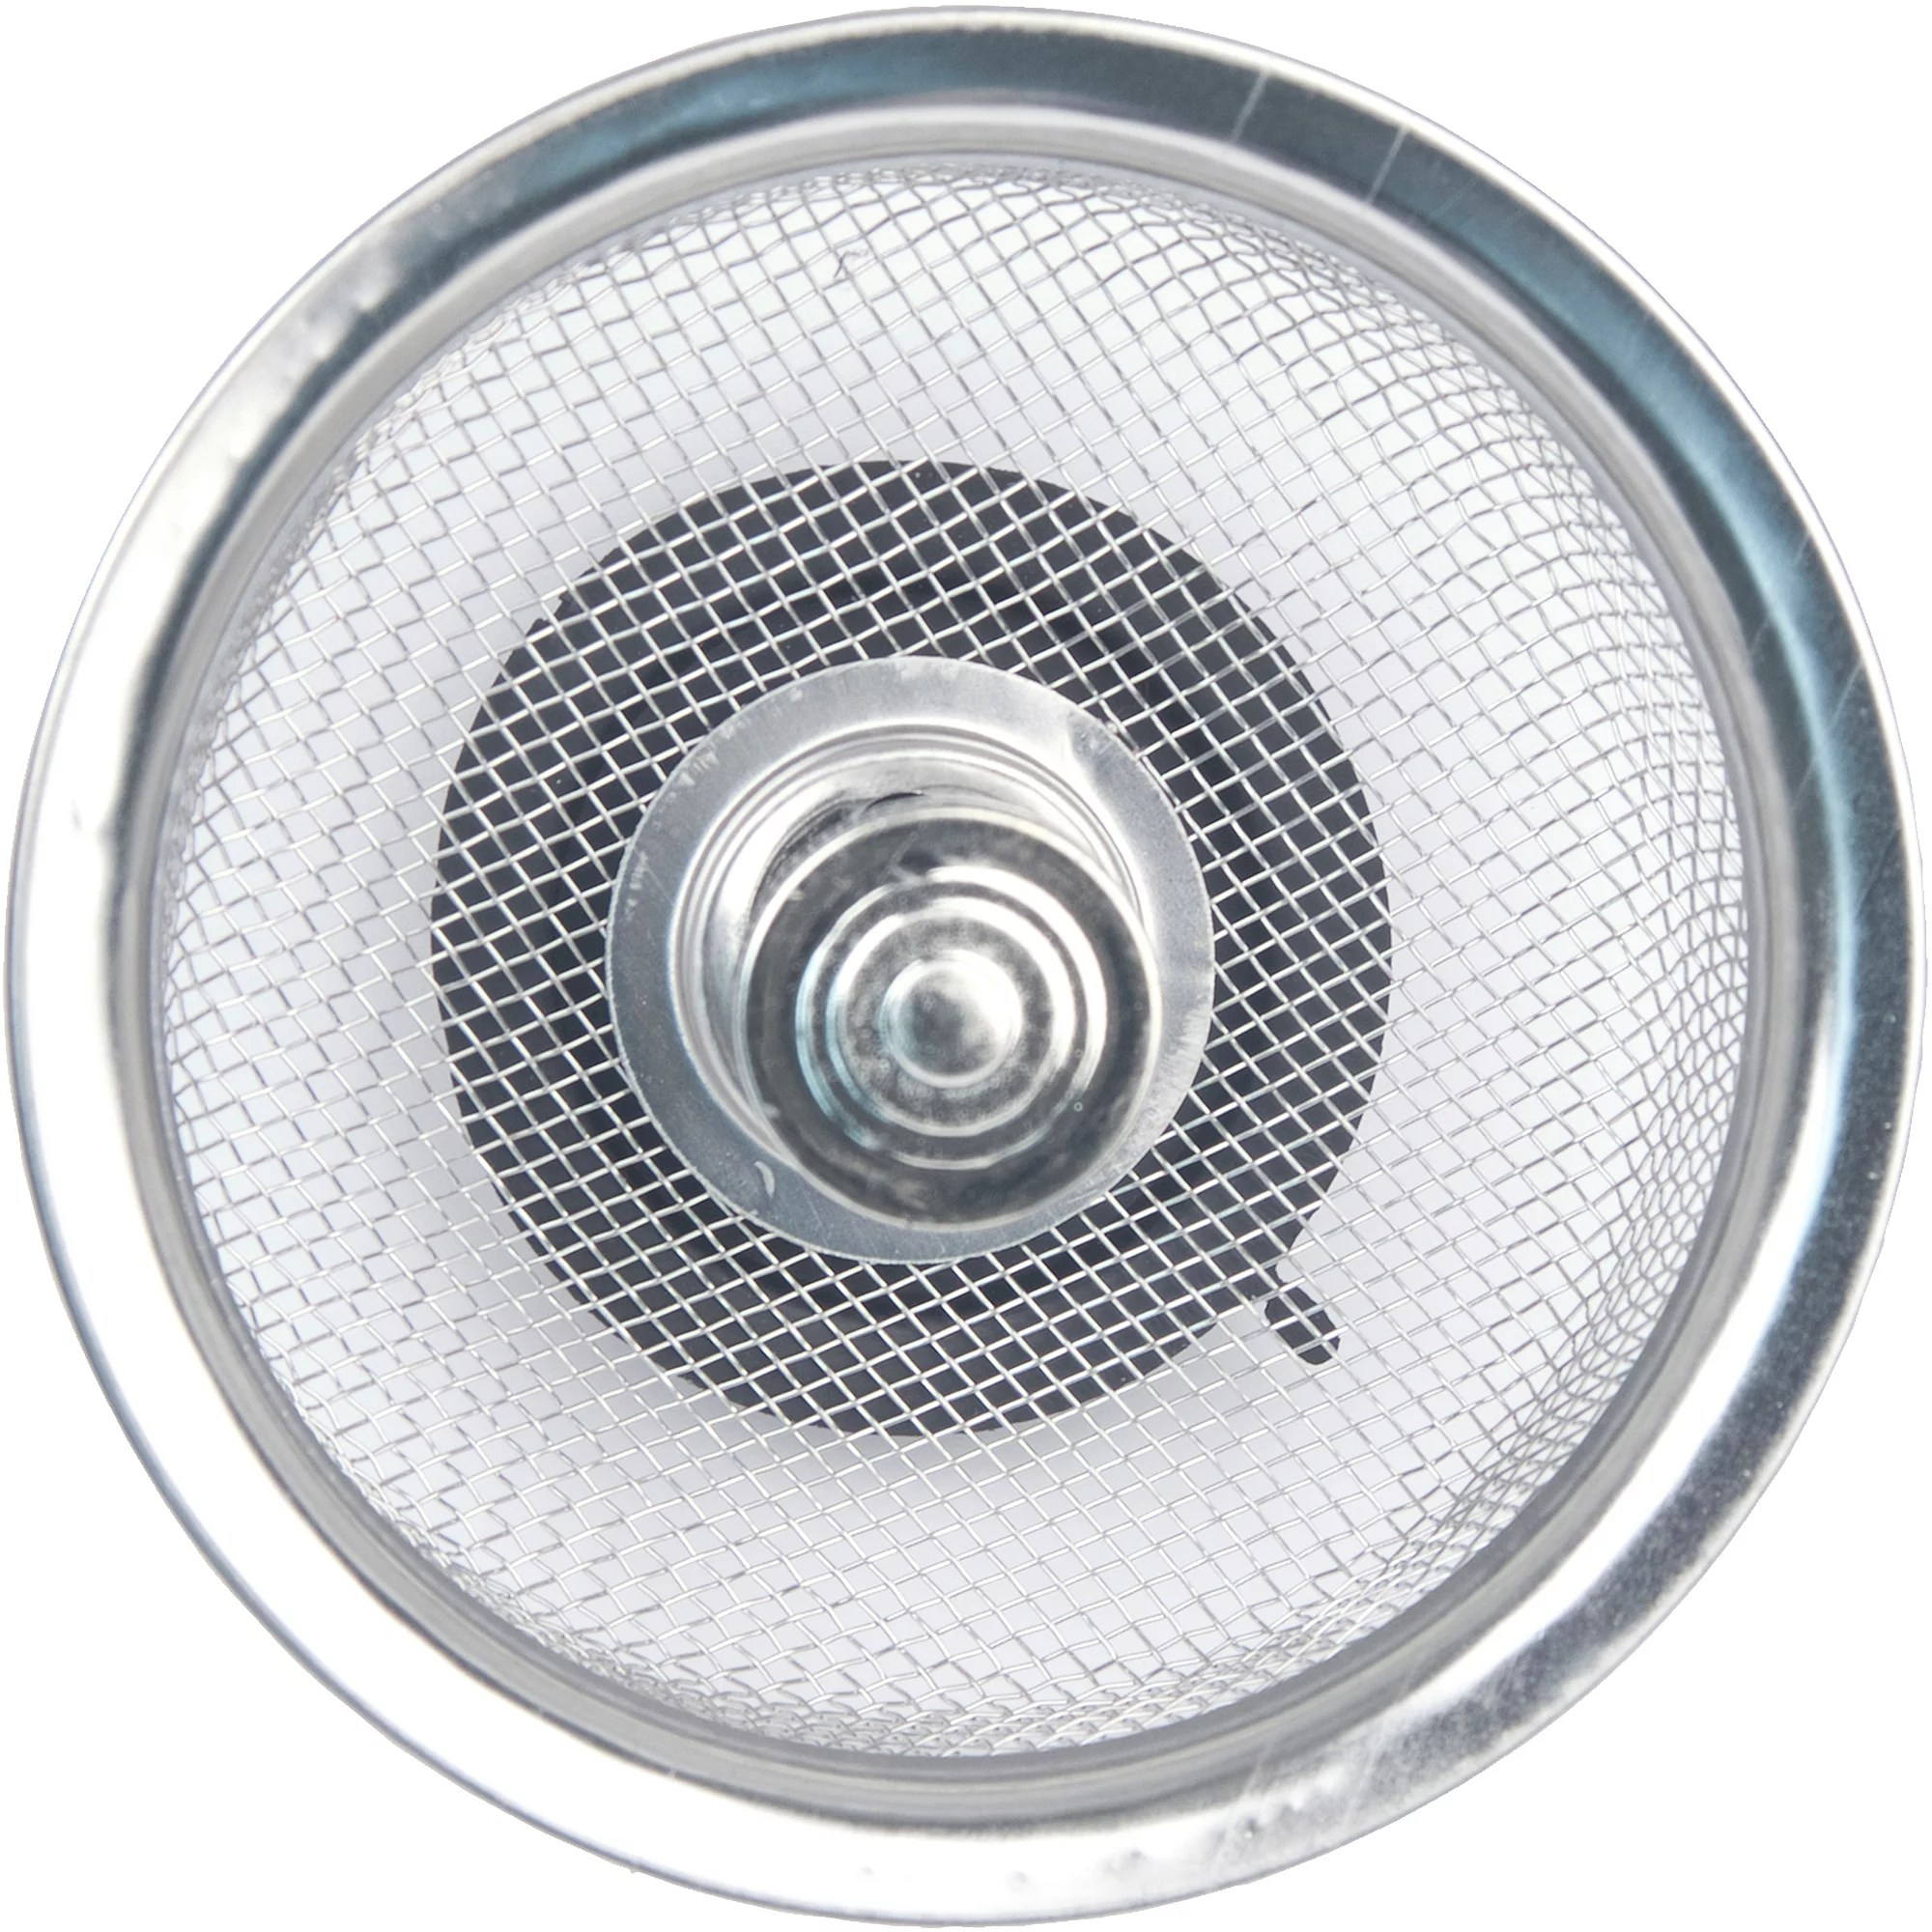 replacing kitchen sink strainer basket kitchen sink draining slowly Kitchen Sink Strainer Replacement Baskets Best Ideas